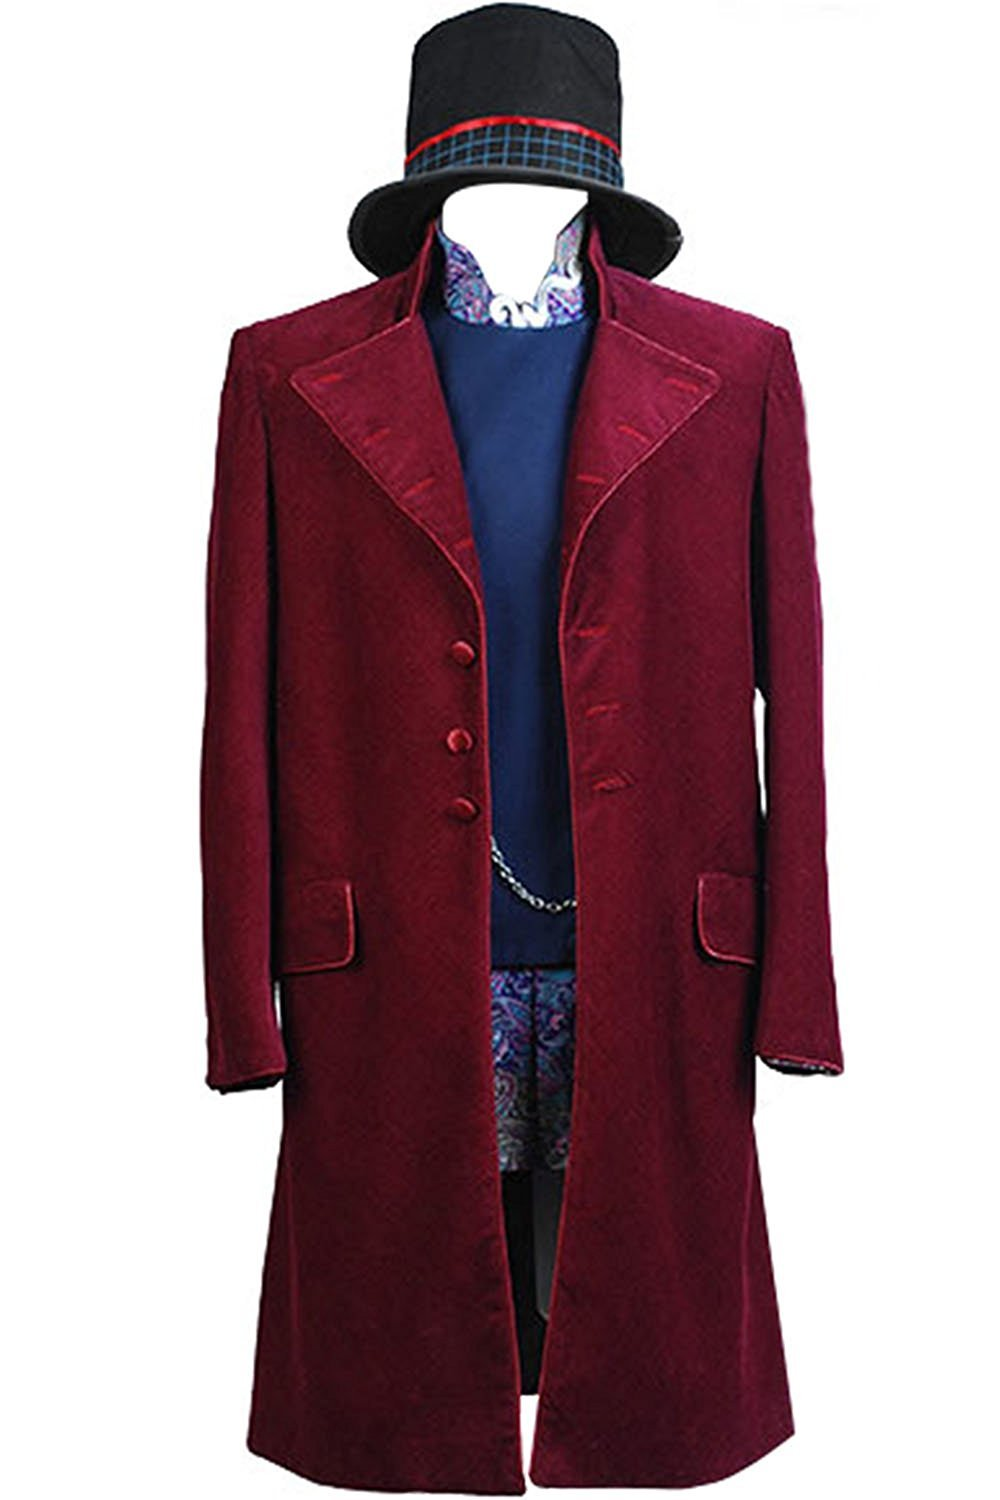 NoveltyBoy Willy Wonka Charlie and the Chocolate Factory Red Johnny Depp Purple Coat Jacket Nest Hat Set Costume by NoveltyBoy